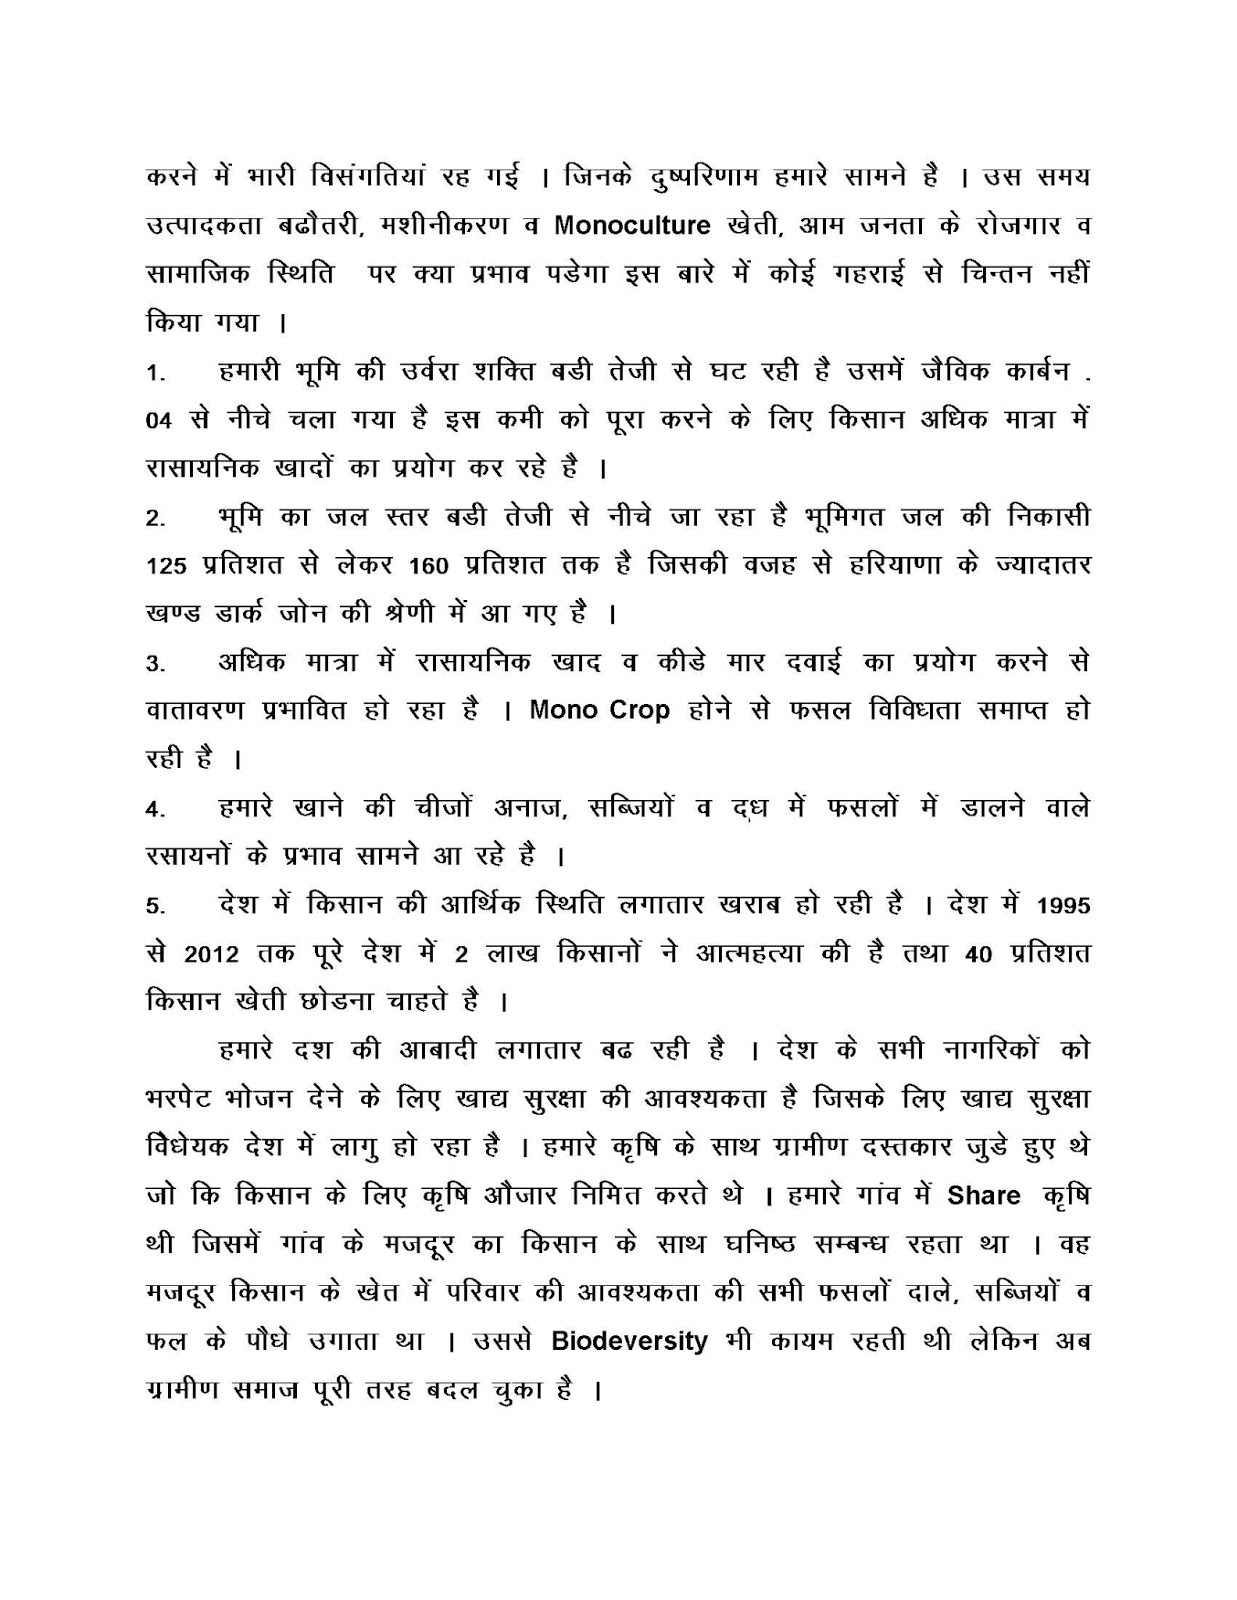 essay about hard worker Importance of hard work in life hindi essay जीवन में परिश्रम का महत्व.